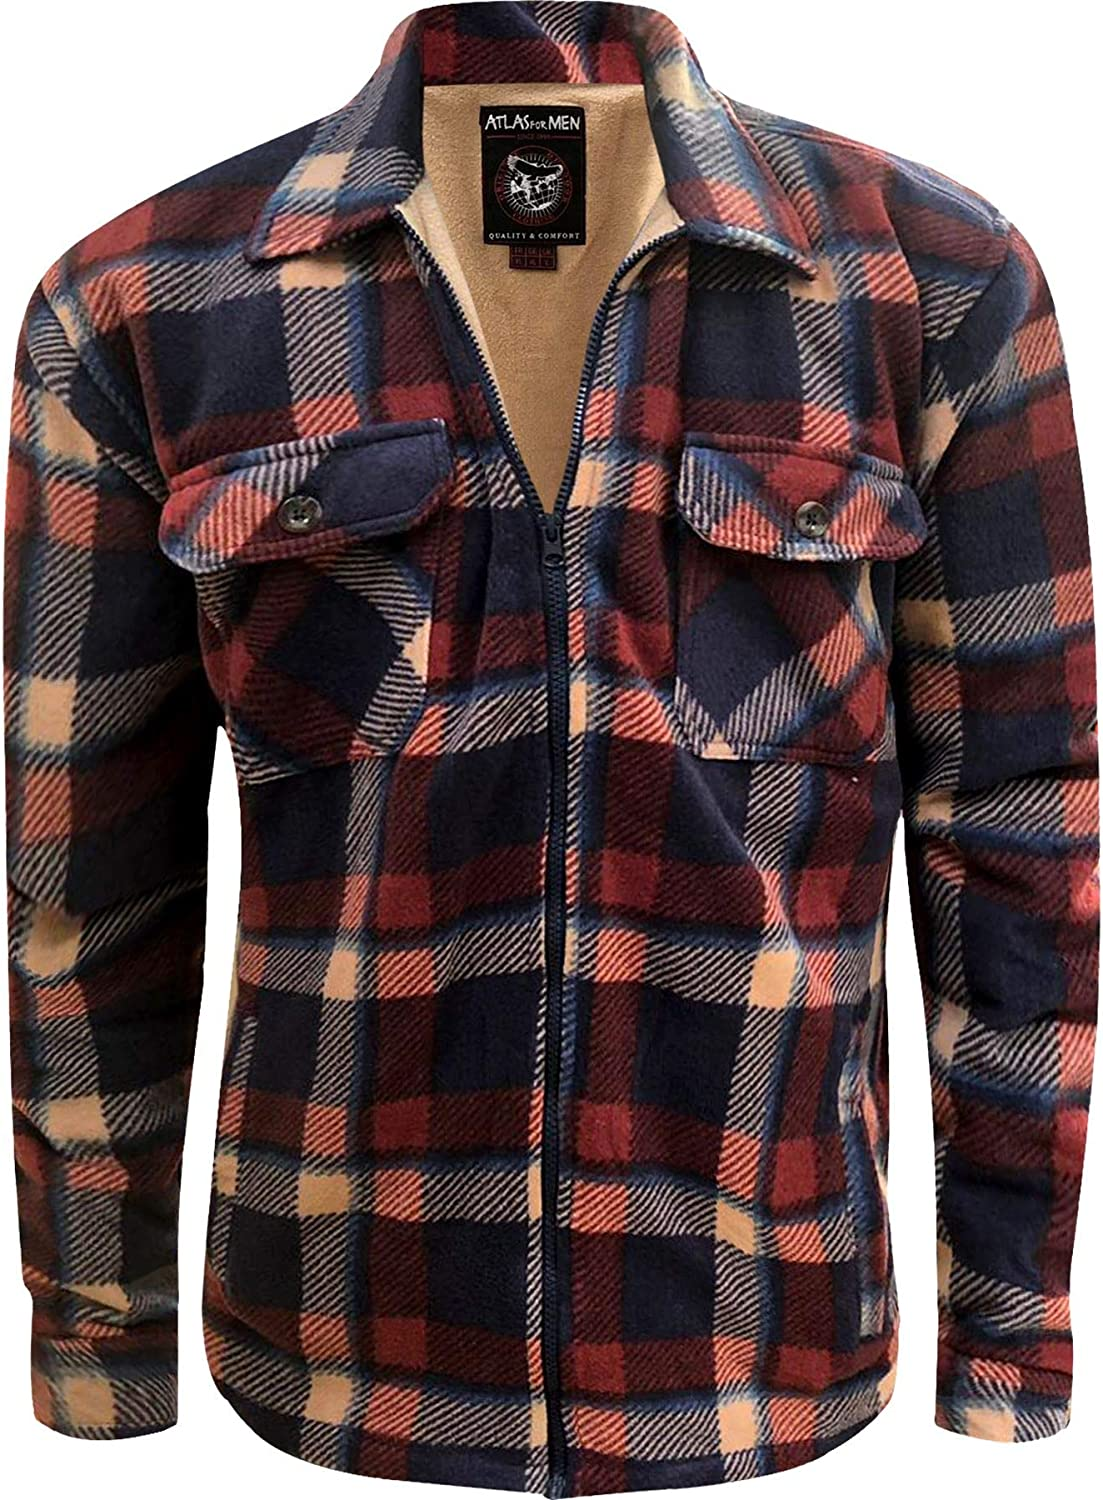 NEW MENS THICK PADDED SHIRT LINED LUMBERJACK FLANNEL WORK JACKET WARM CASUAL TOP